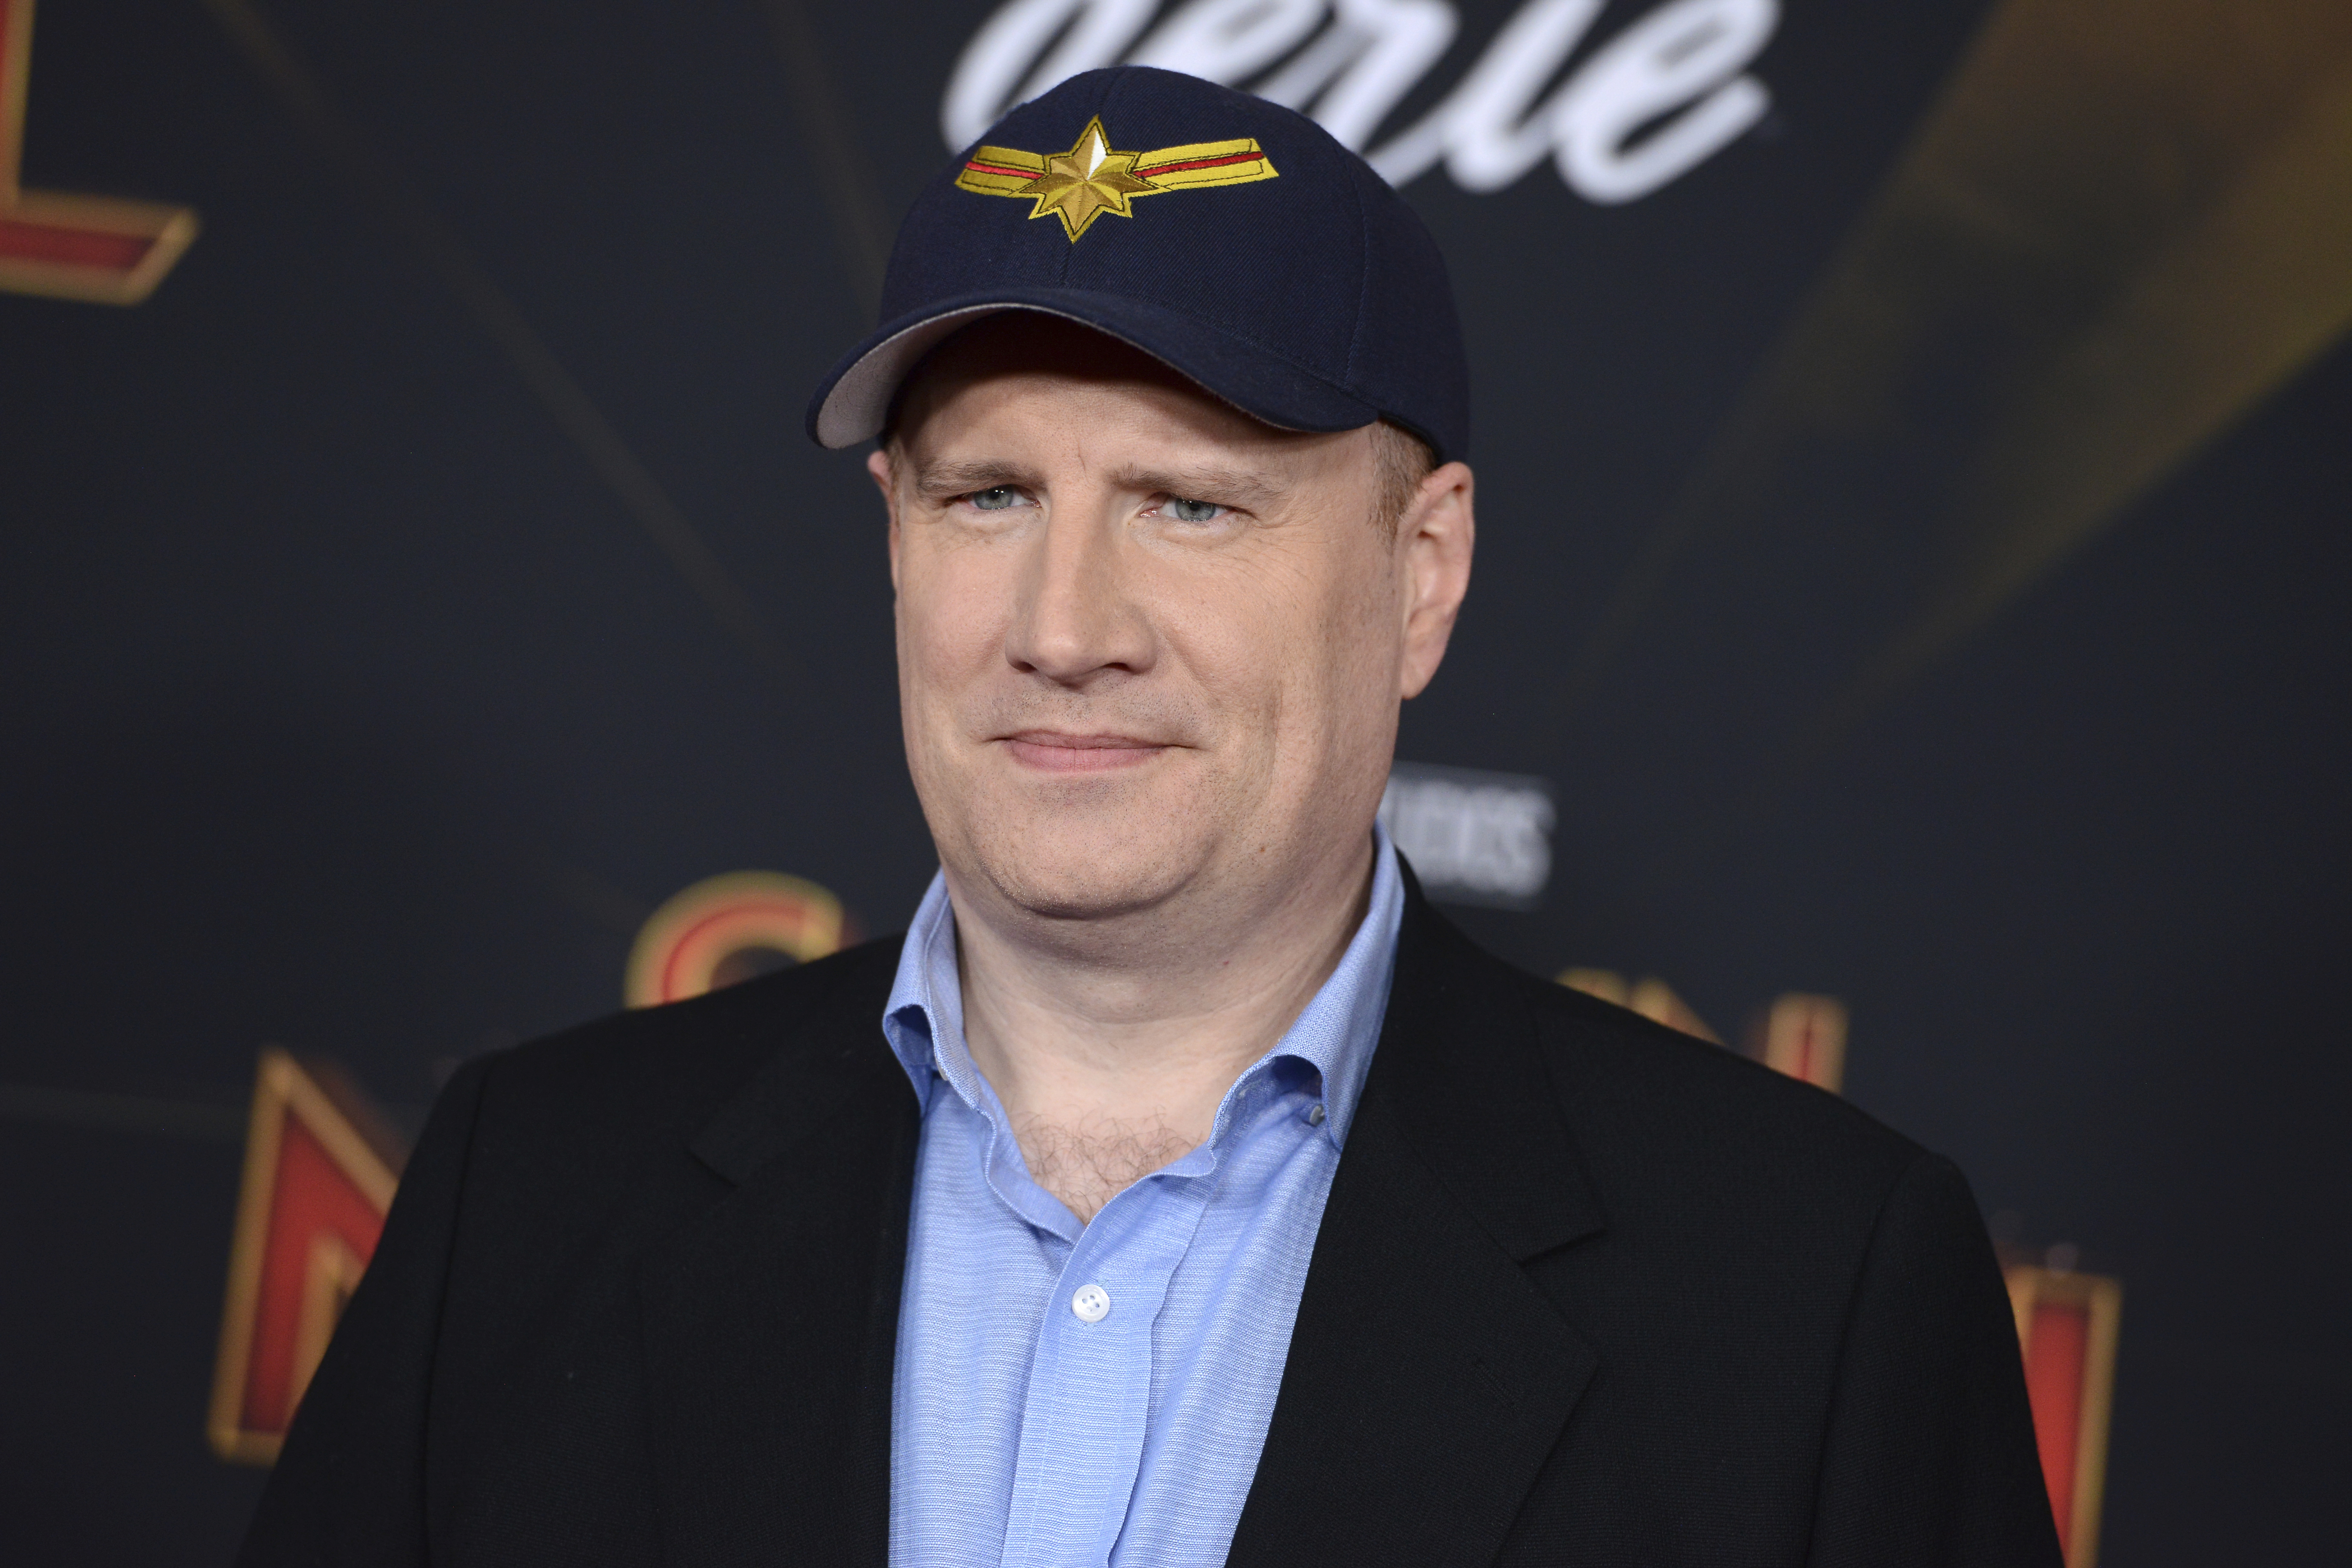 """Kevin Feige arrives at the world premiere of """"Captain Marvel"""" on Monday, March 4, 2019, at the El Capitan Theatre in Los Angeles. (Photo by Jordan Strauss/Invision/AP)"""